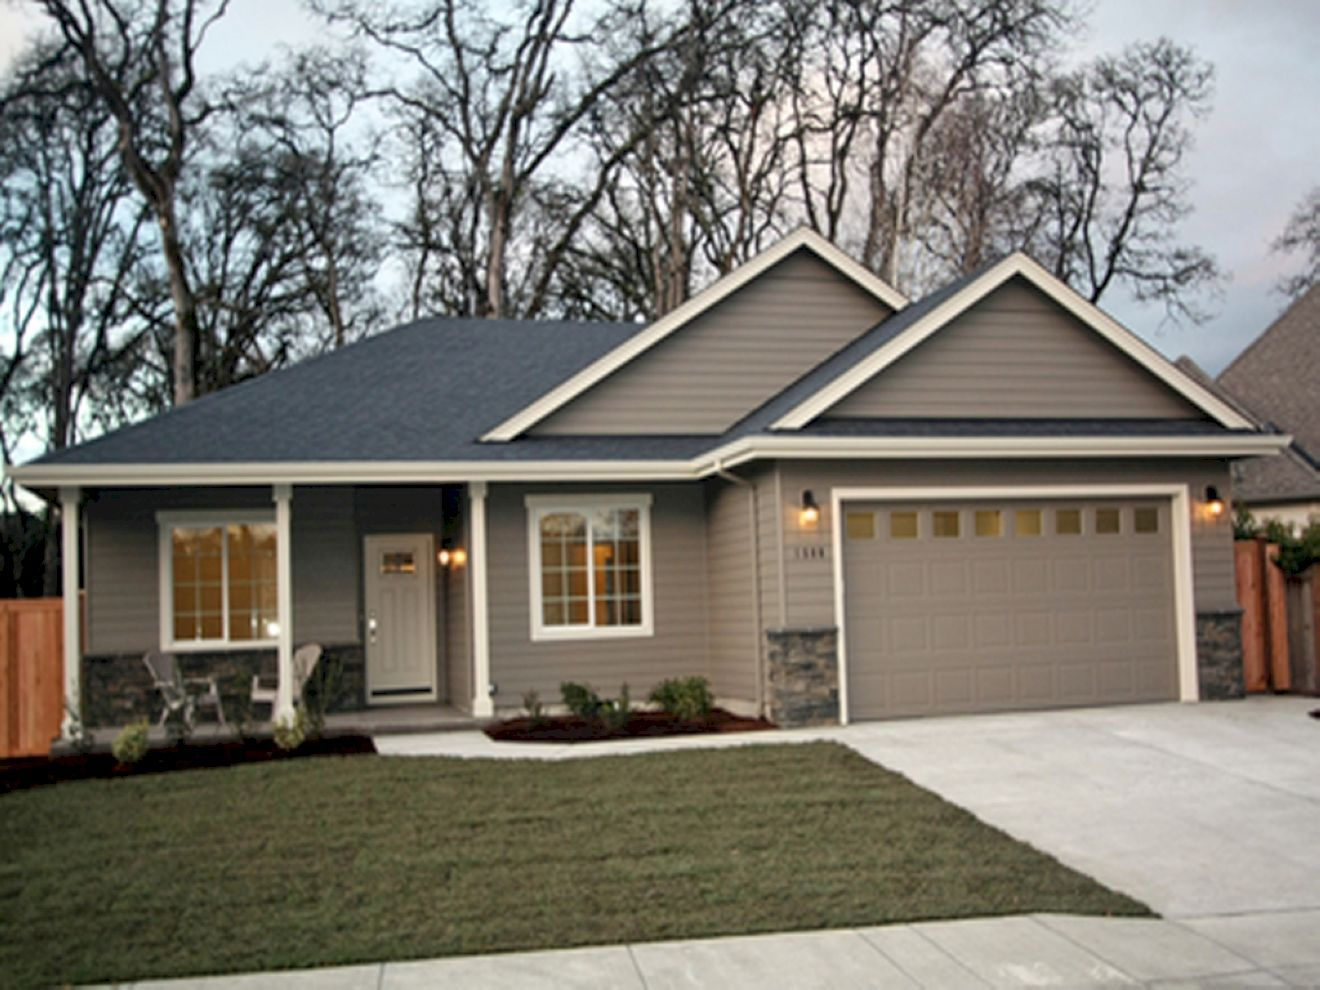 72 exterior house colors or ranch style homes | pinterest | ranch